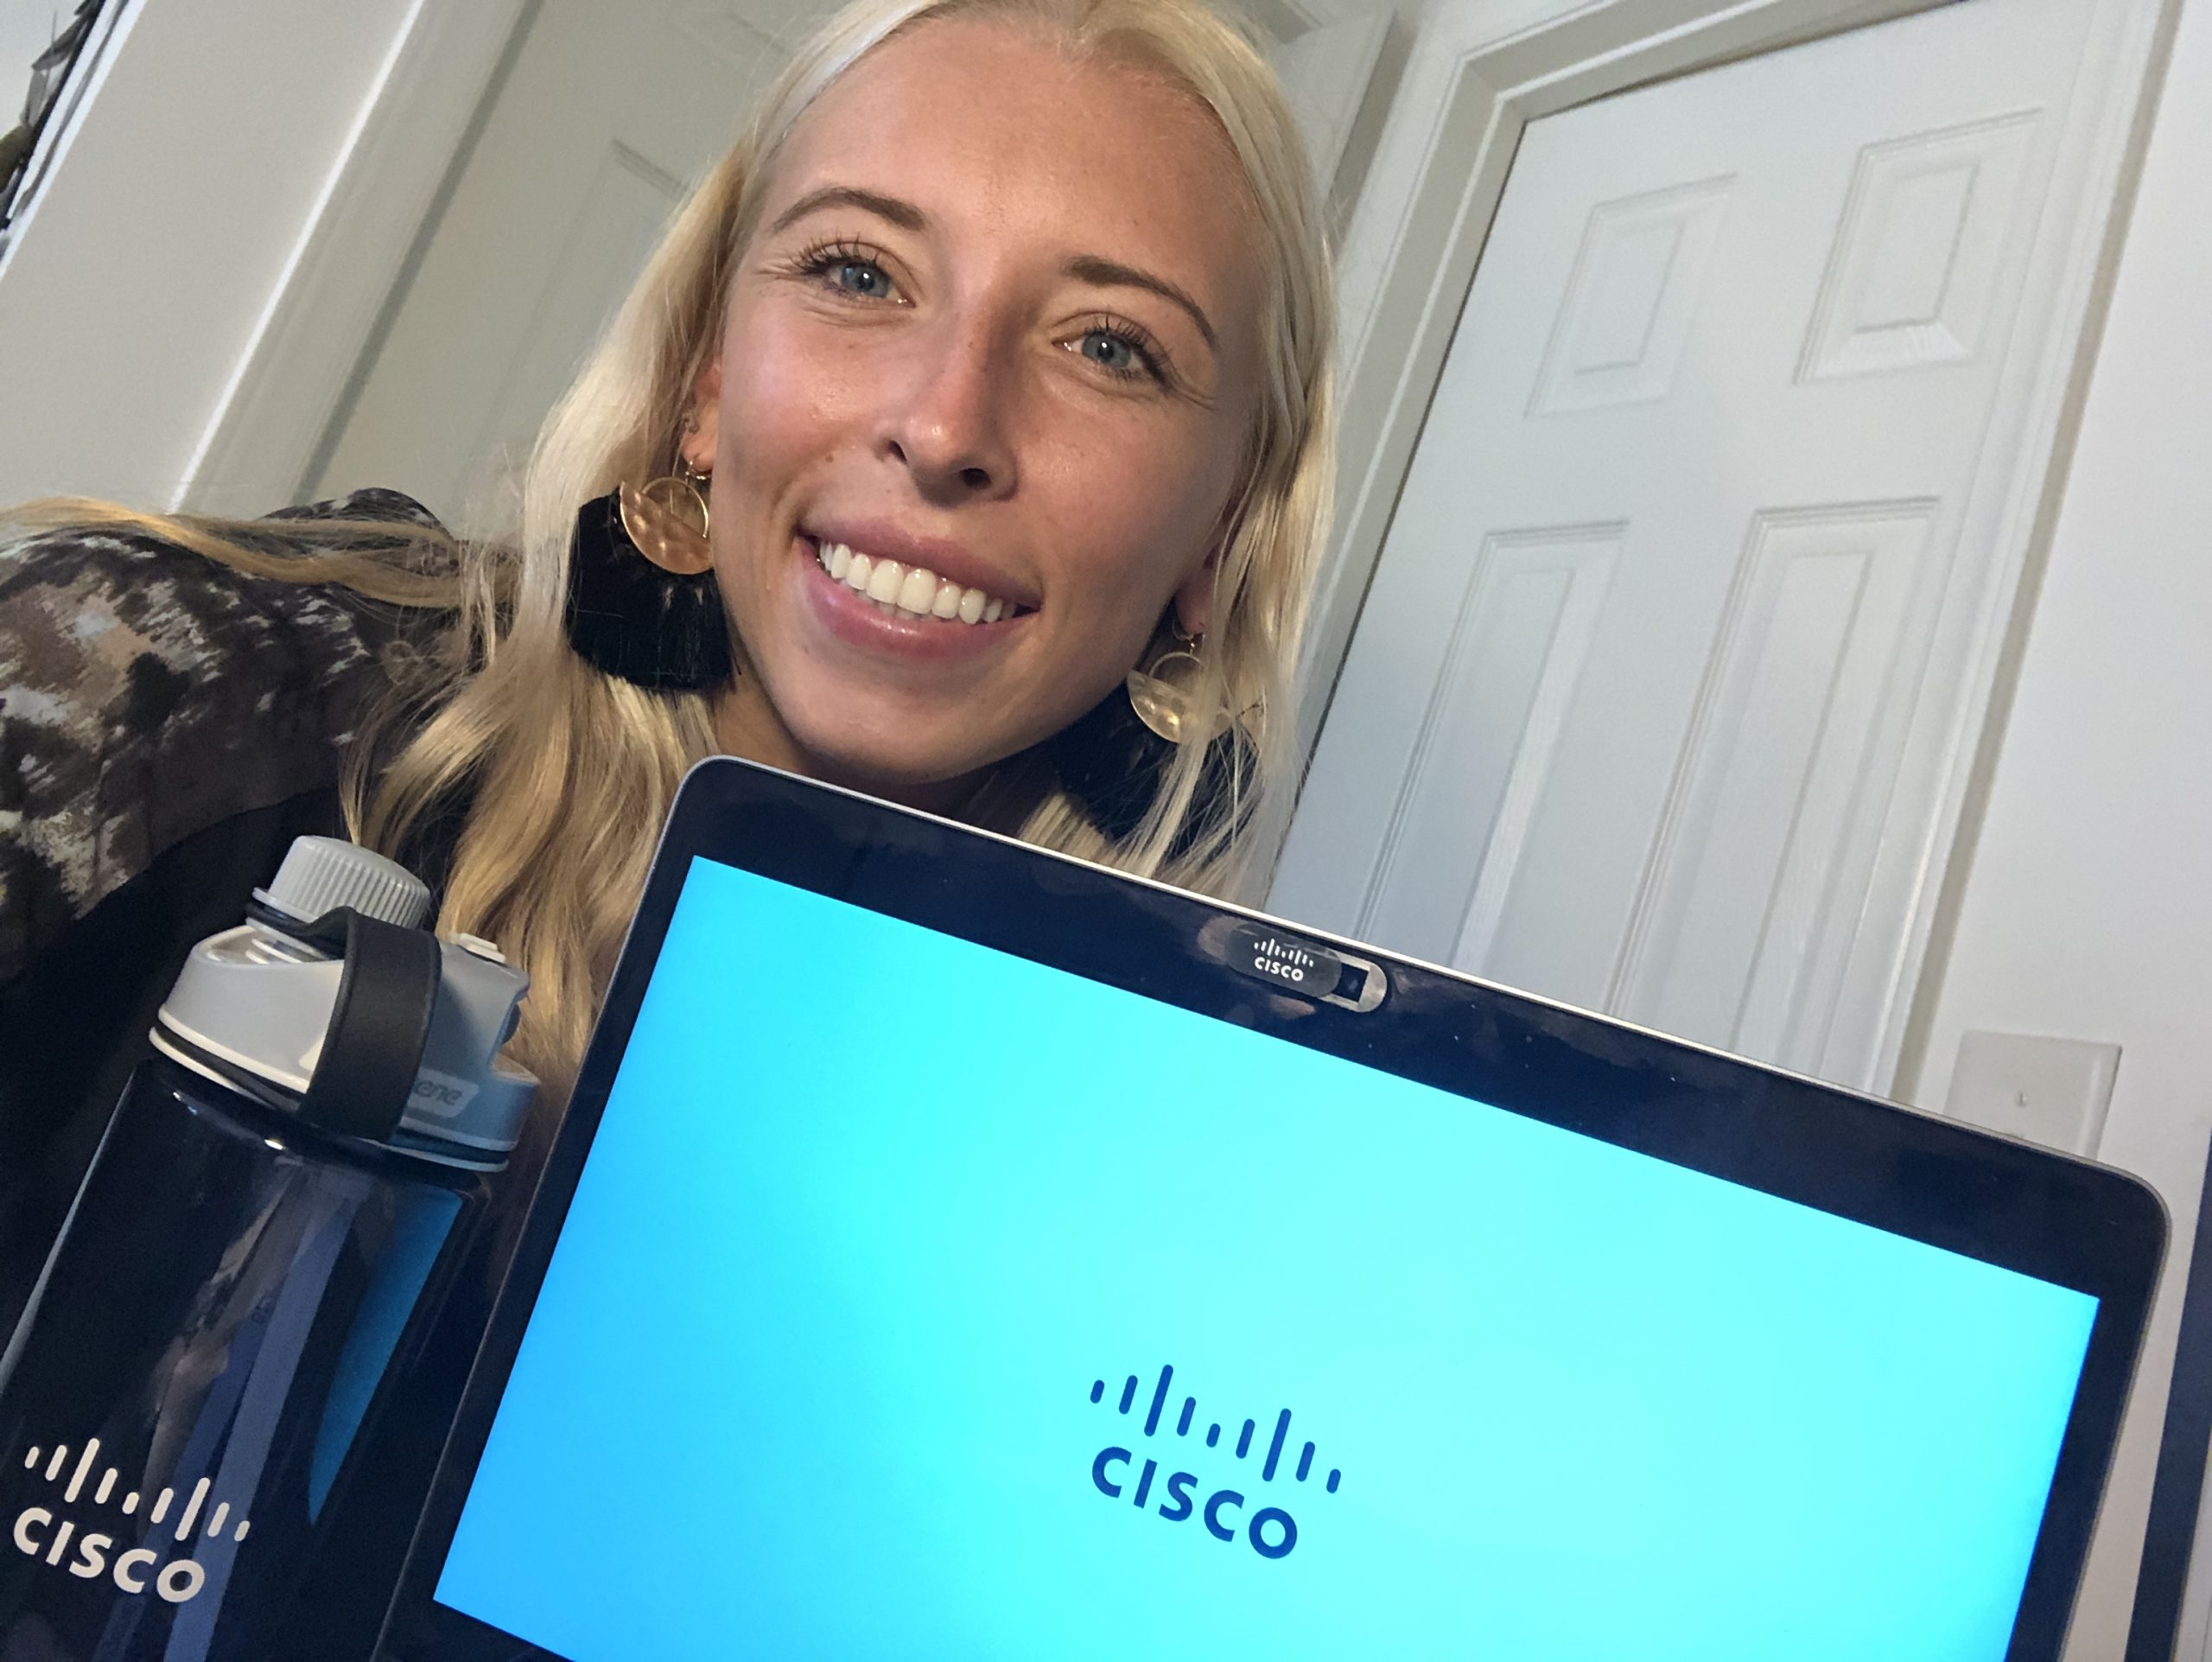 Courtney smiles behind her Cisco laptop and branded water bottle.